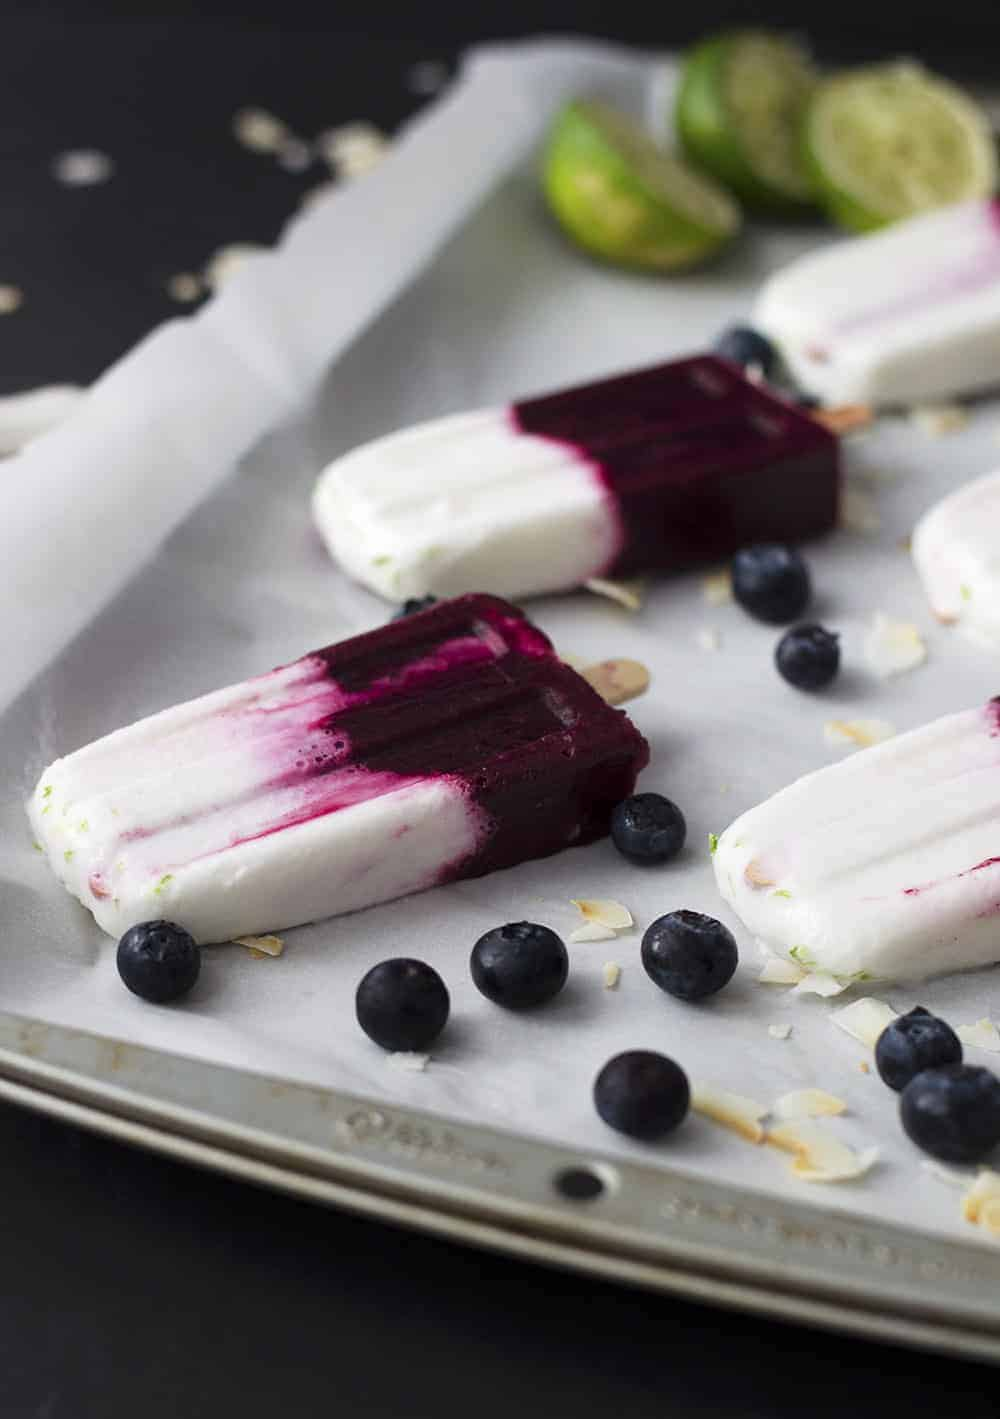 The blueberry and coconut colours work very well together for these popsicles